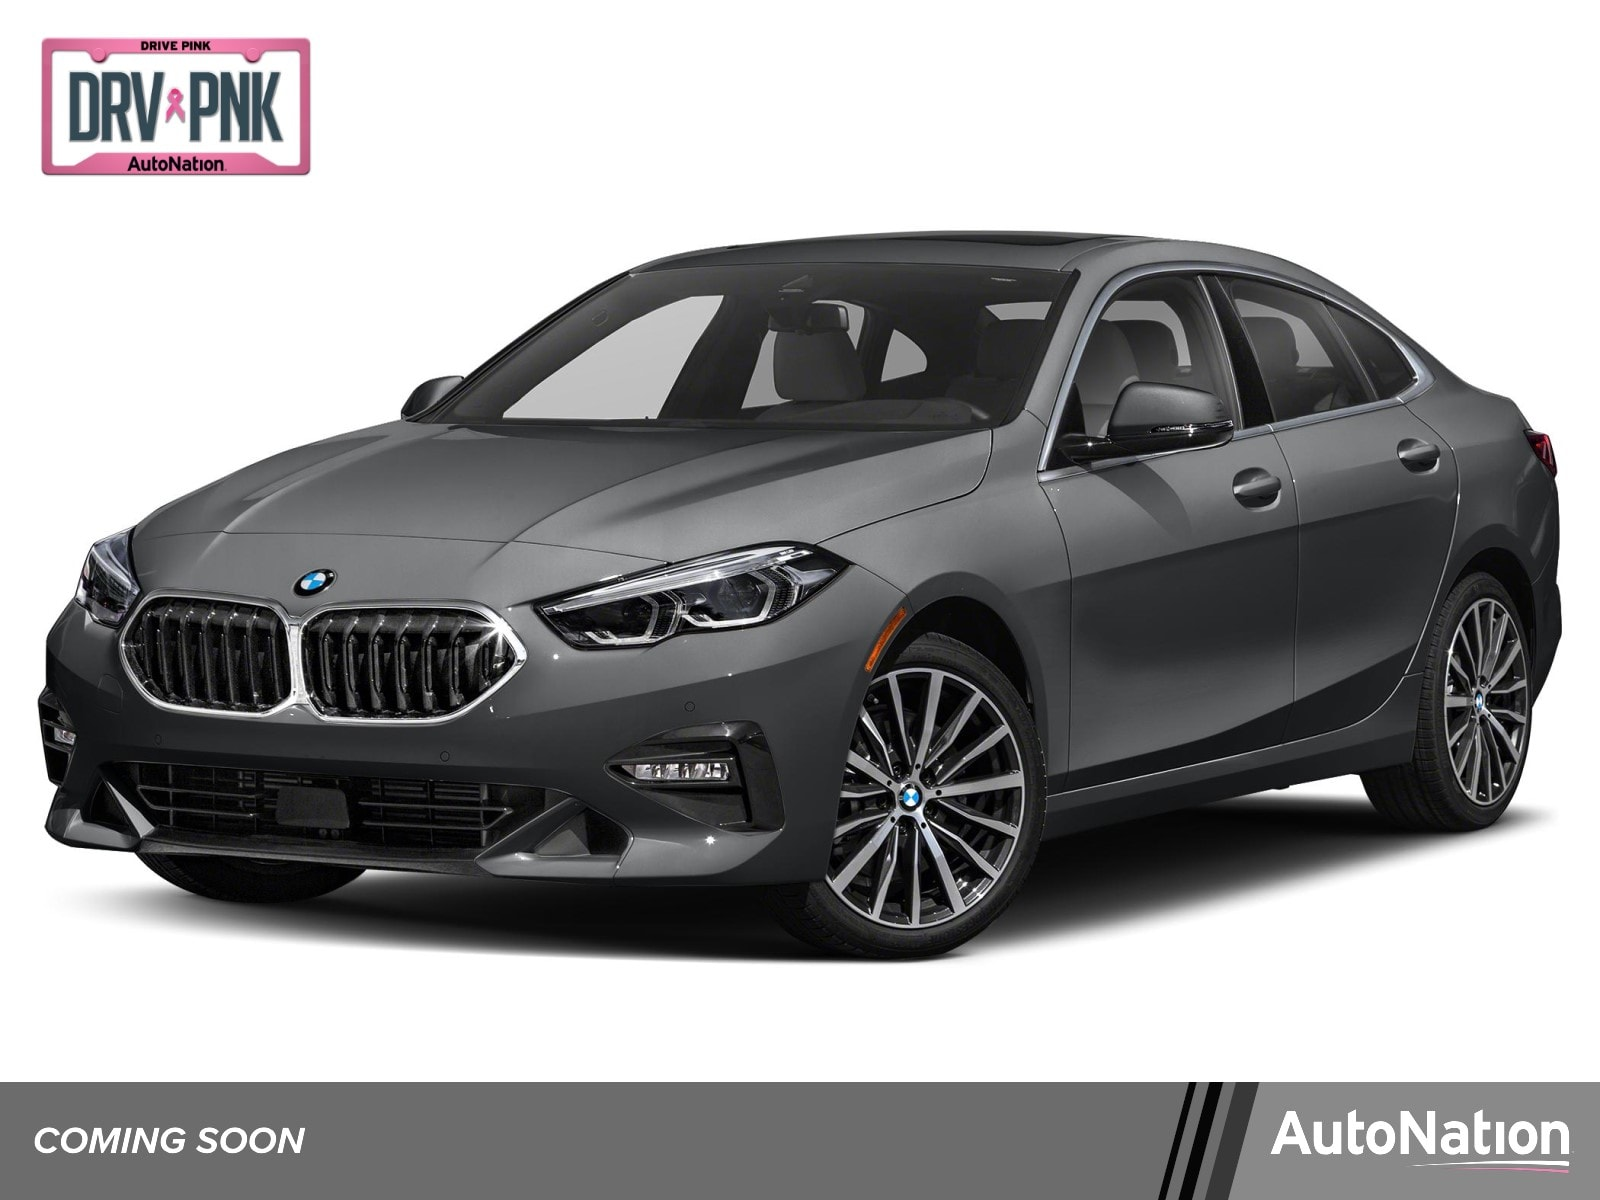 New Bmw Cars Savs For Sale In Las Vegas Nv New Inventory